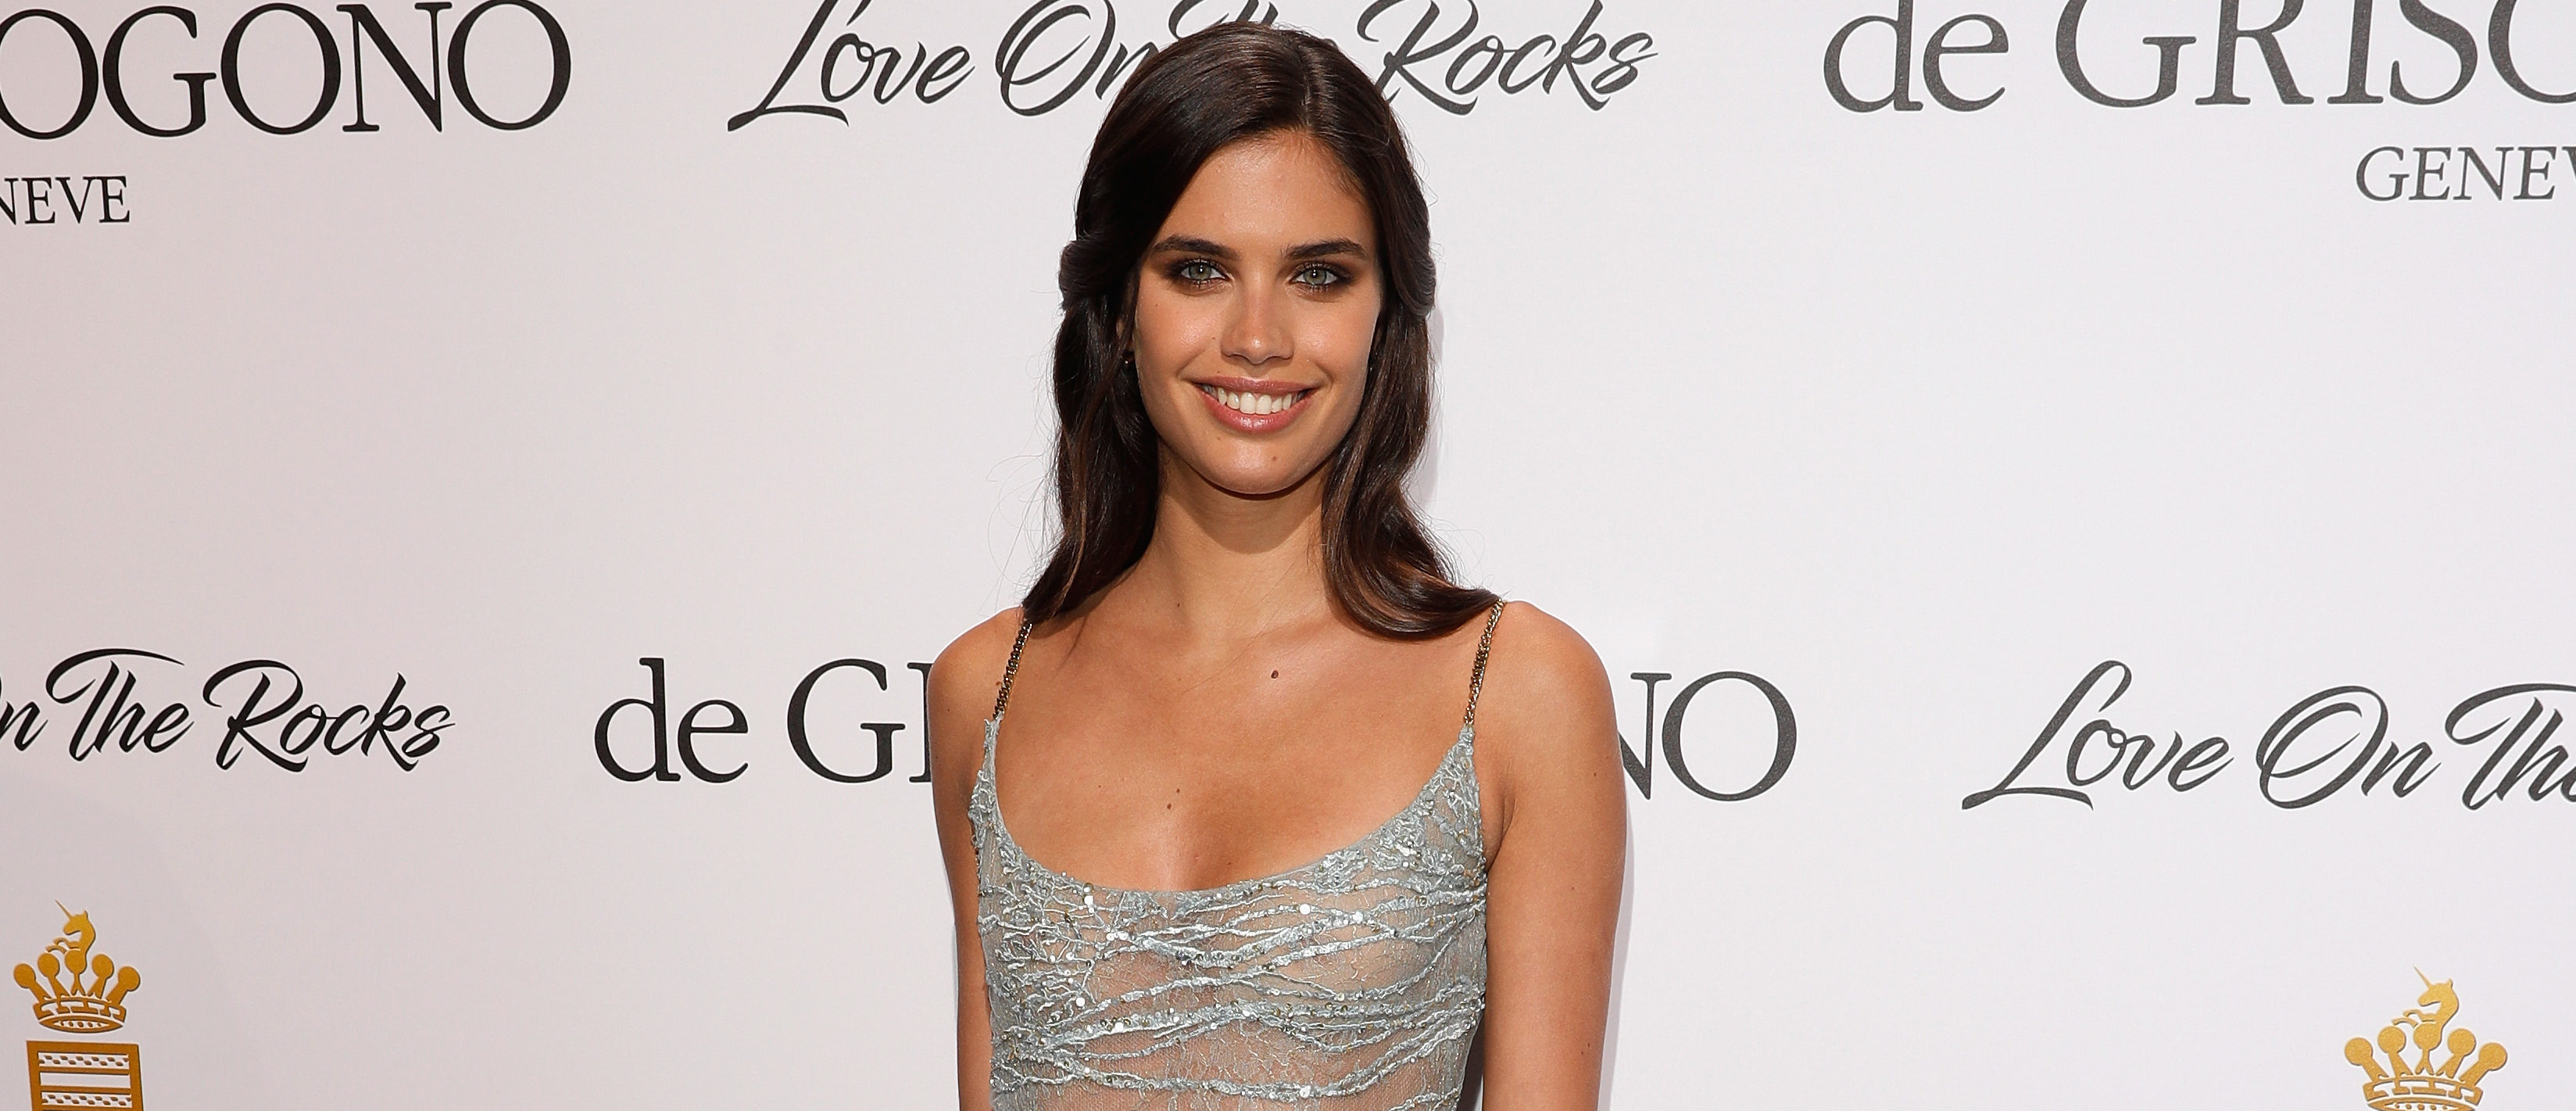 "Sara Sampaio attends the DeGrisogono ""Love On The Rocks"" during the 70th annual Cannes Film Festival at Hotel du Cap-Eden-Roc on May 23, 2017 in Cap d'Antibes, France. (Photo by Andreas Rentz/Getty Images)"